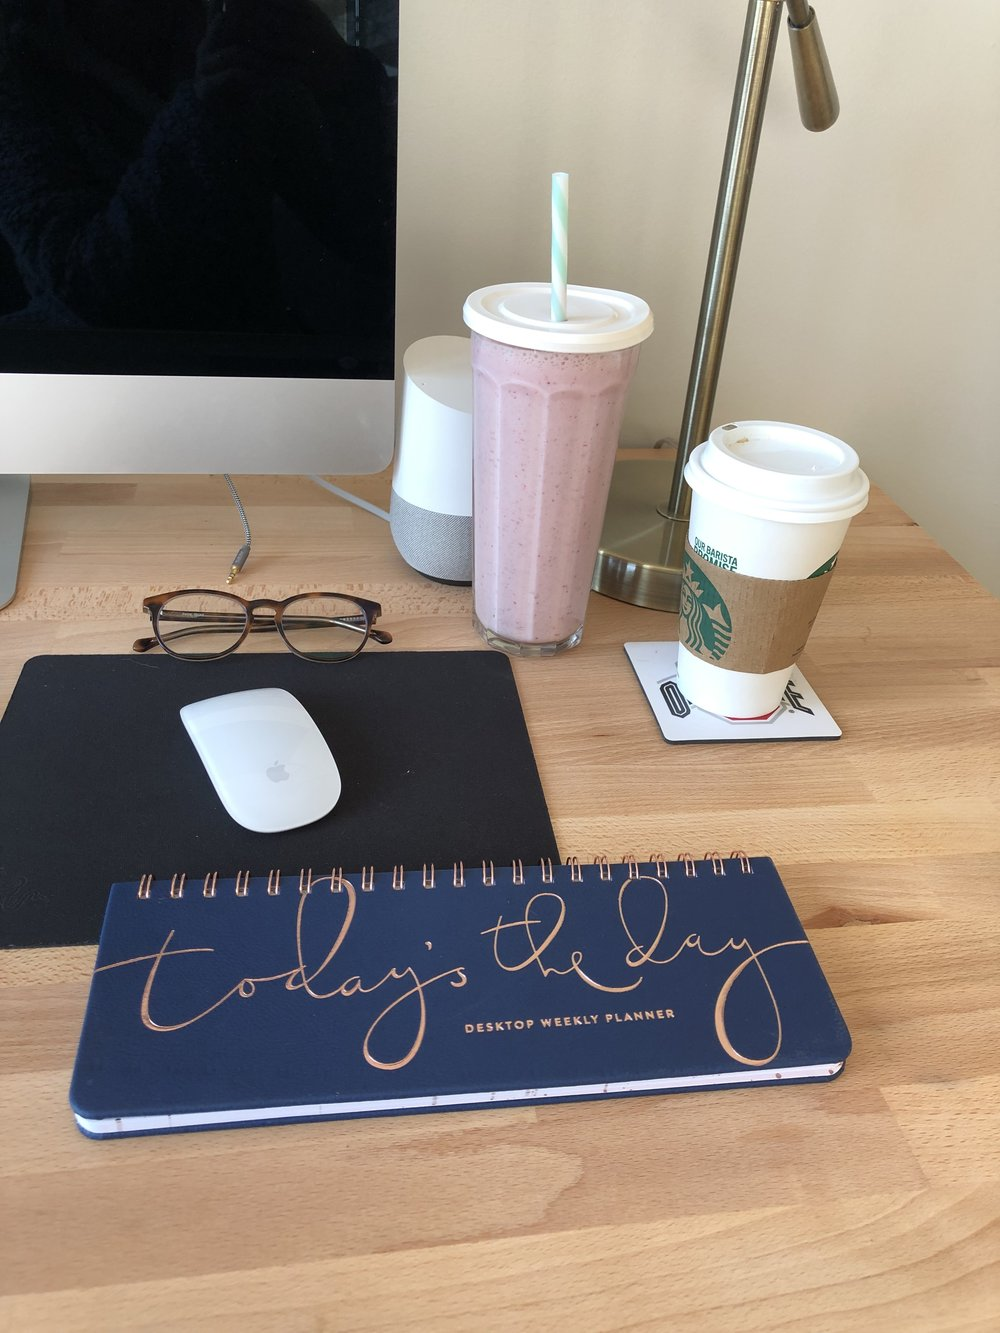 Desk weekly planner to help you be more organized